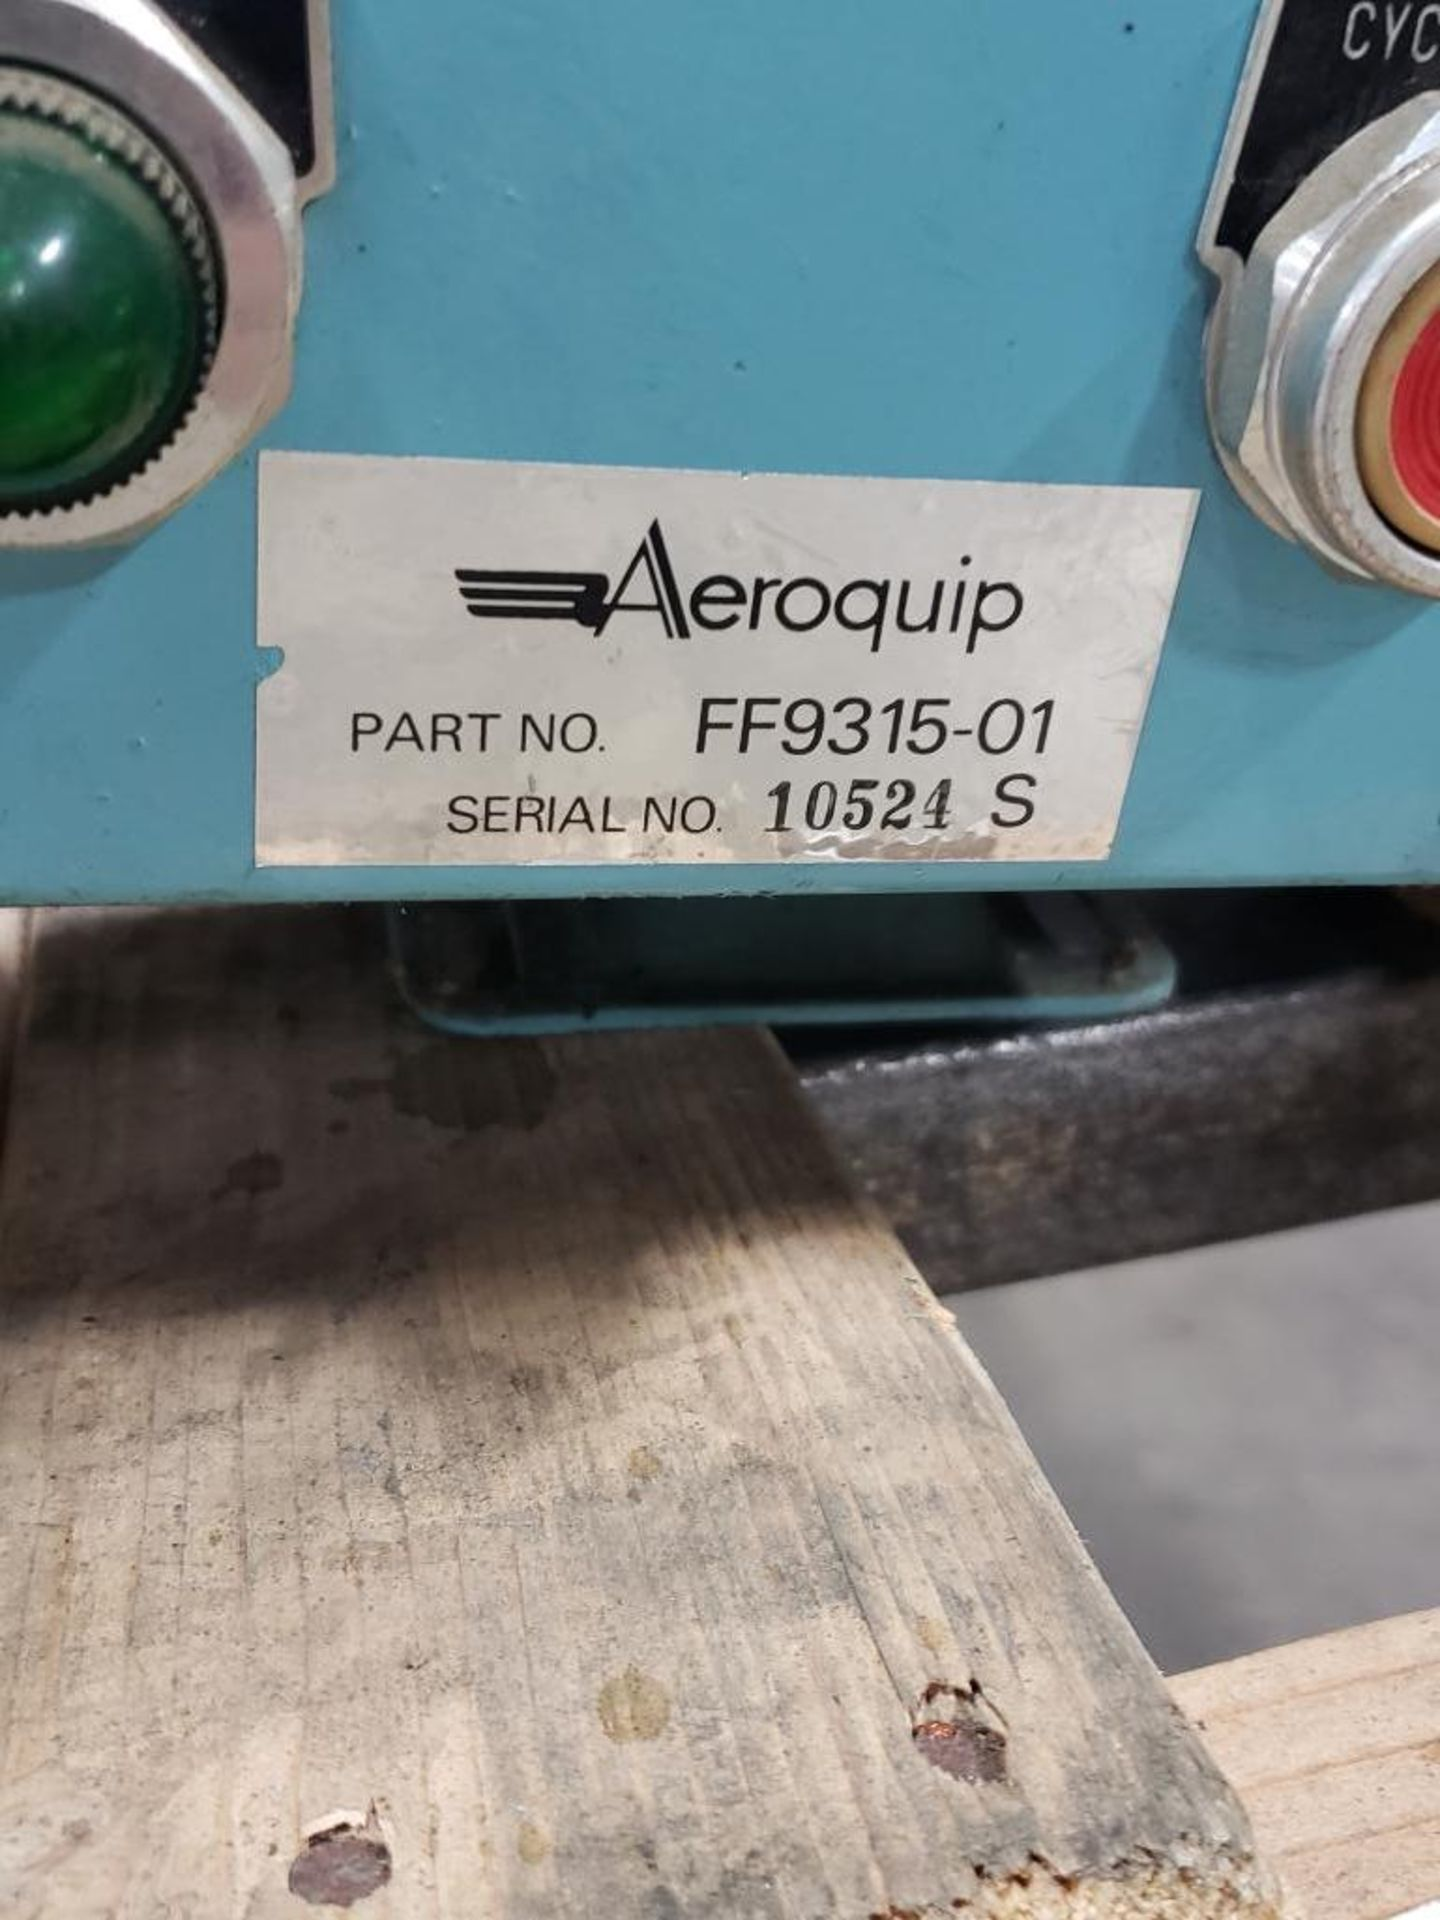 Lot 27 - Aeroquip pump model FF9315-01. Appears to be new with storage wear.